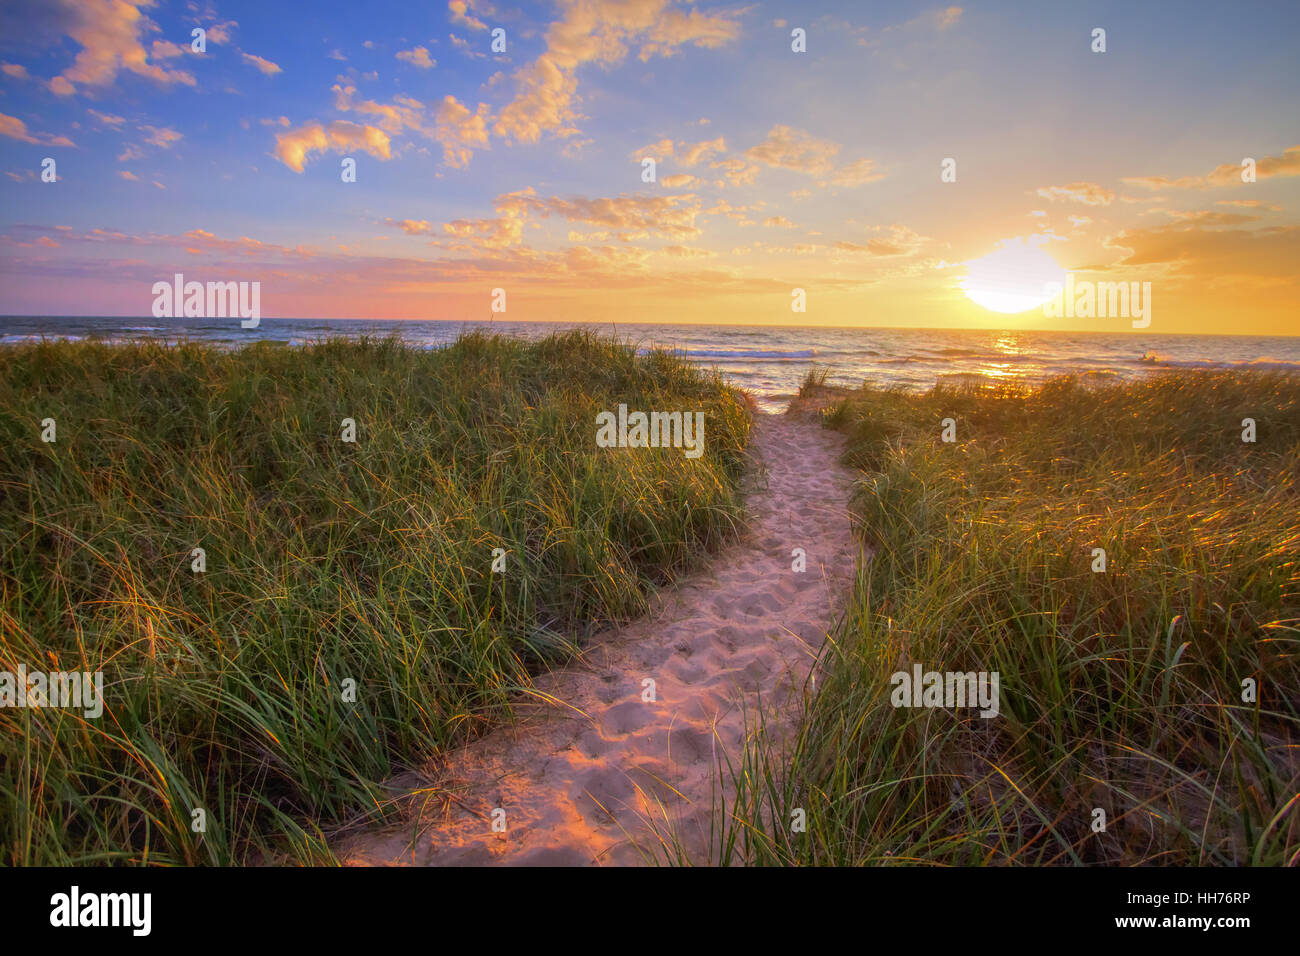 Path To A Sunset Beach. Winding trail through dune grass leads to a sunset beach on the coast of the inland sea - Stock Image